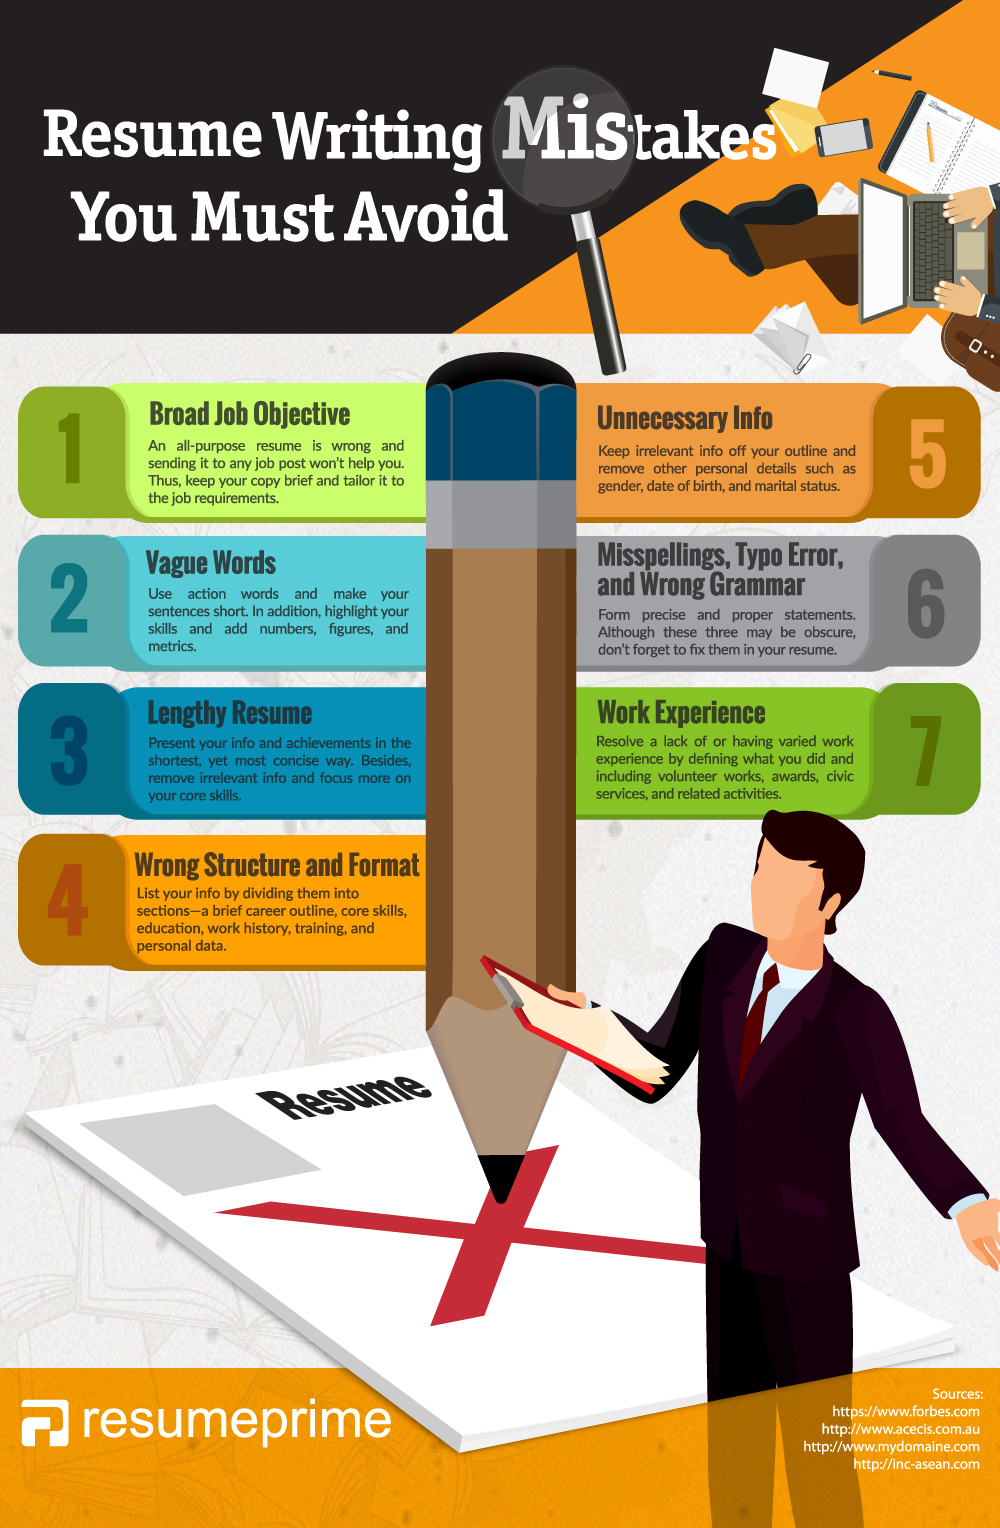 resume writing mistakes